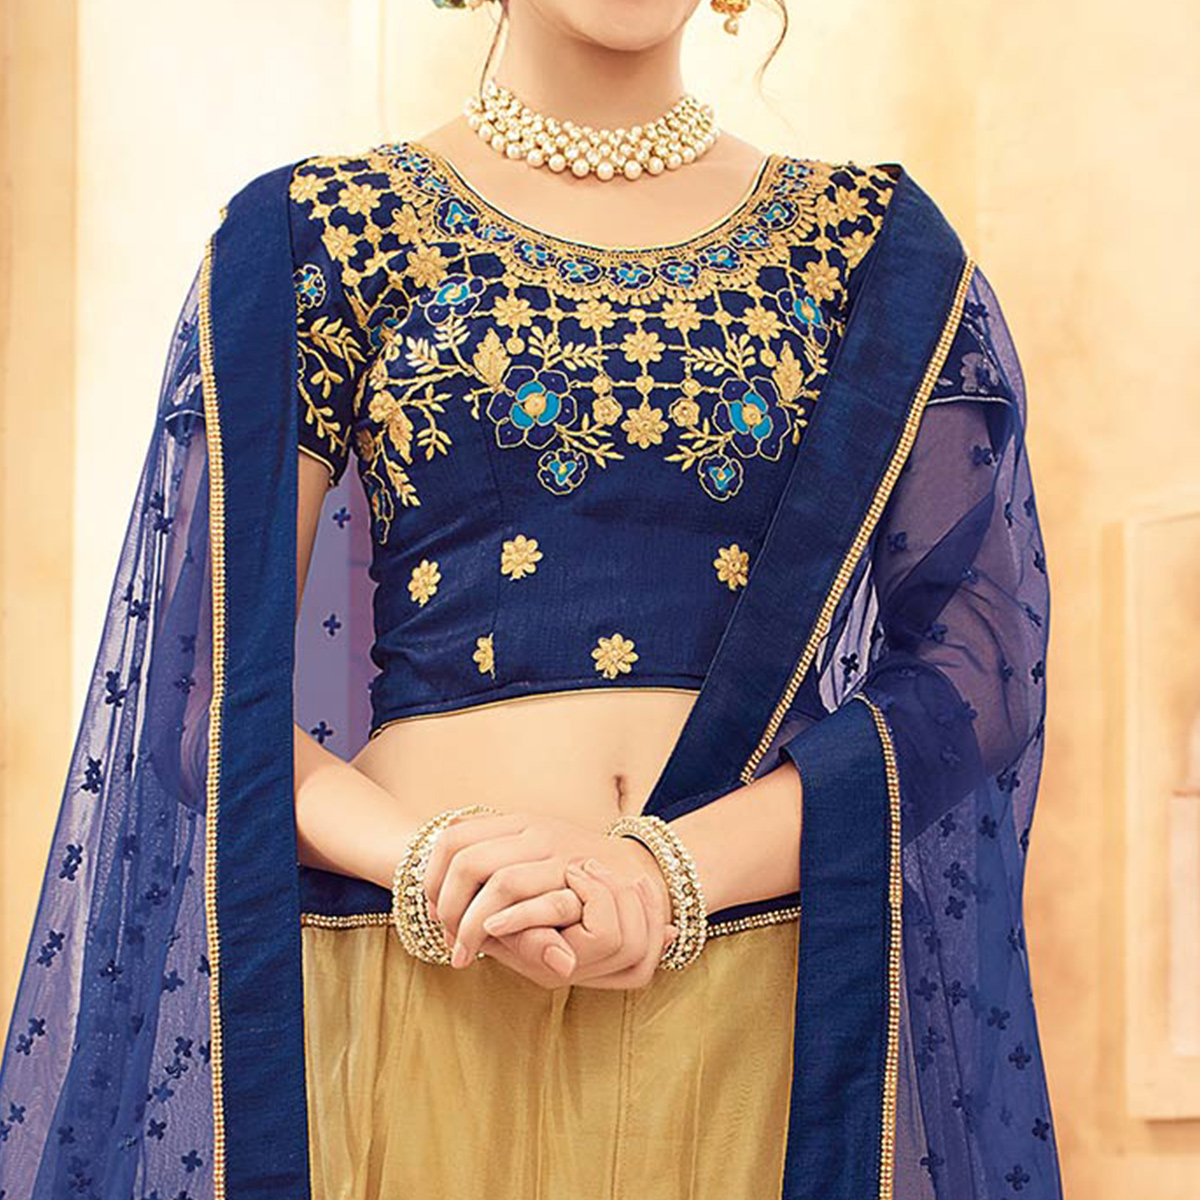 Breathtaking Beige-Navy Designer Embroidered Butterfly Net Lehenga Choli